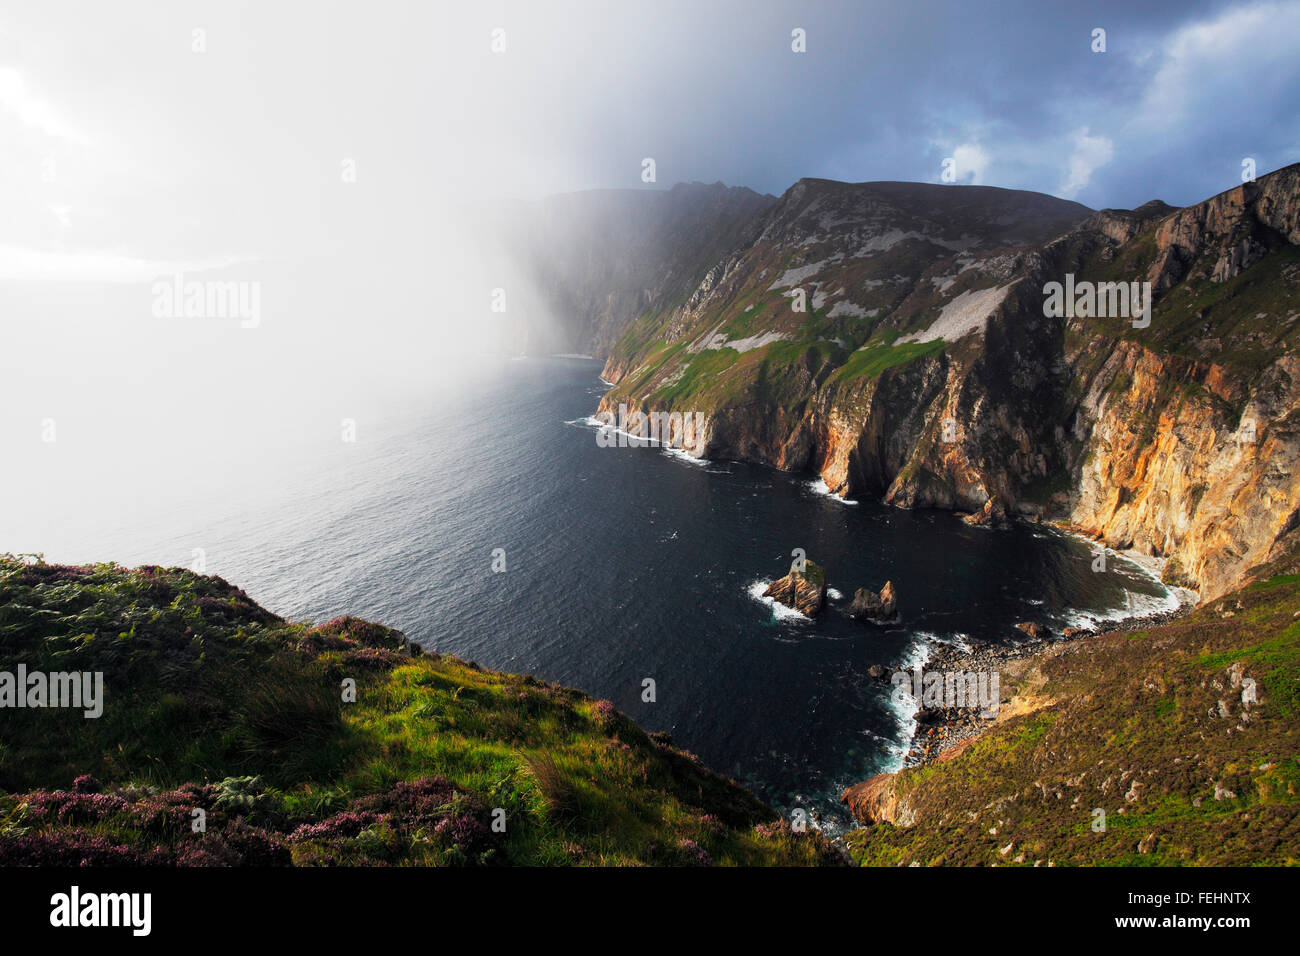 heavy rain shower in front of the sunset at Slieve League (Irish: Sliabh Liag)  601 metres (1,972 ft) high sea cliffs - Stock Image